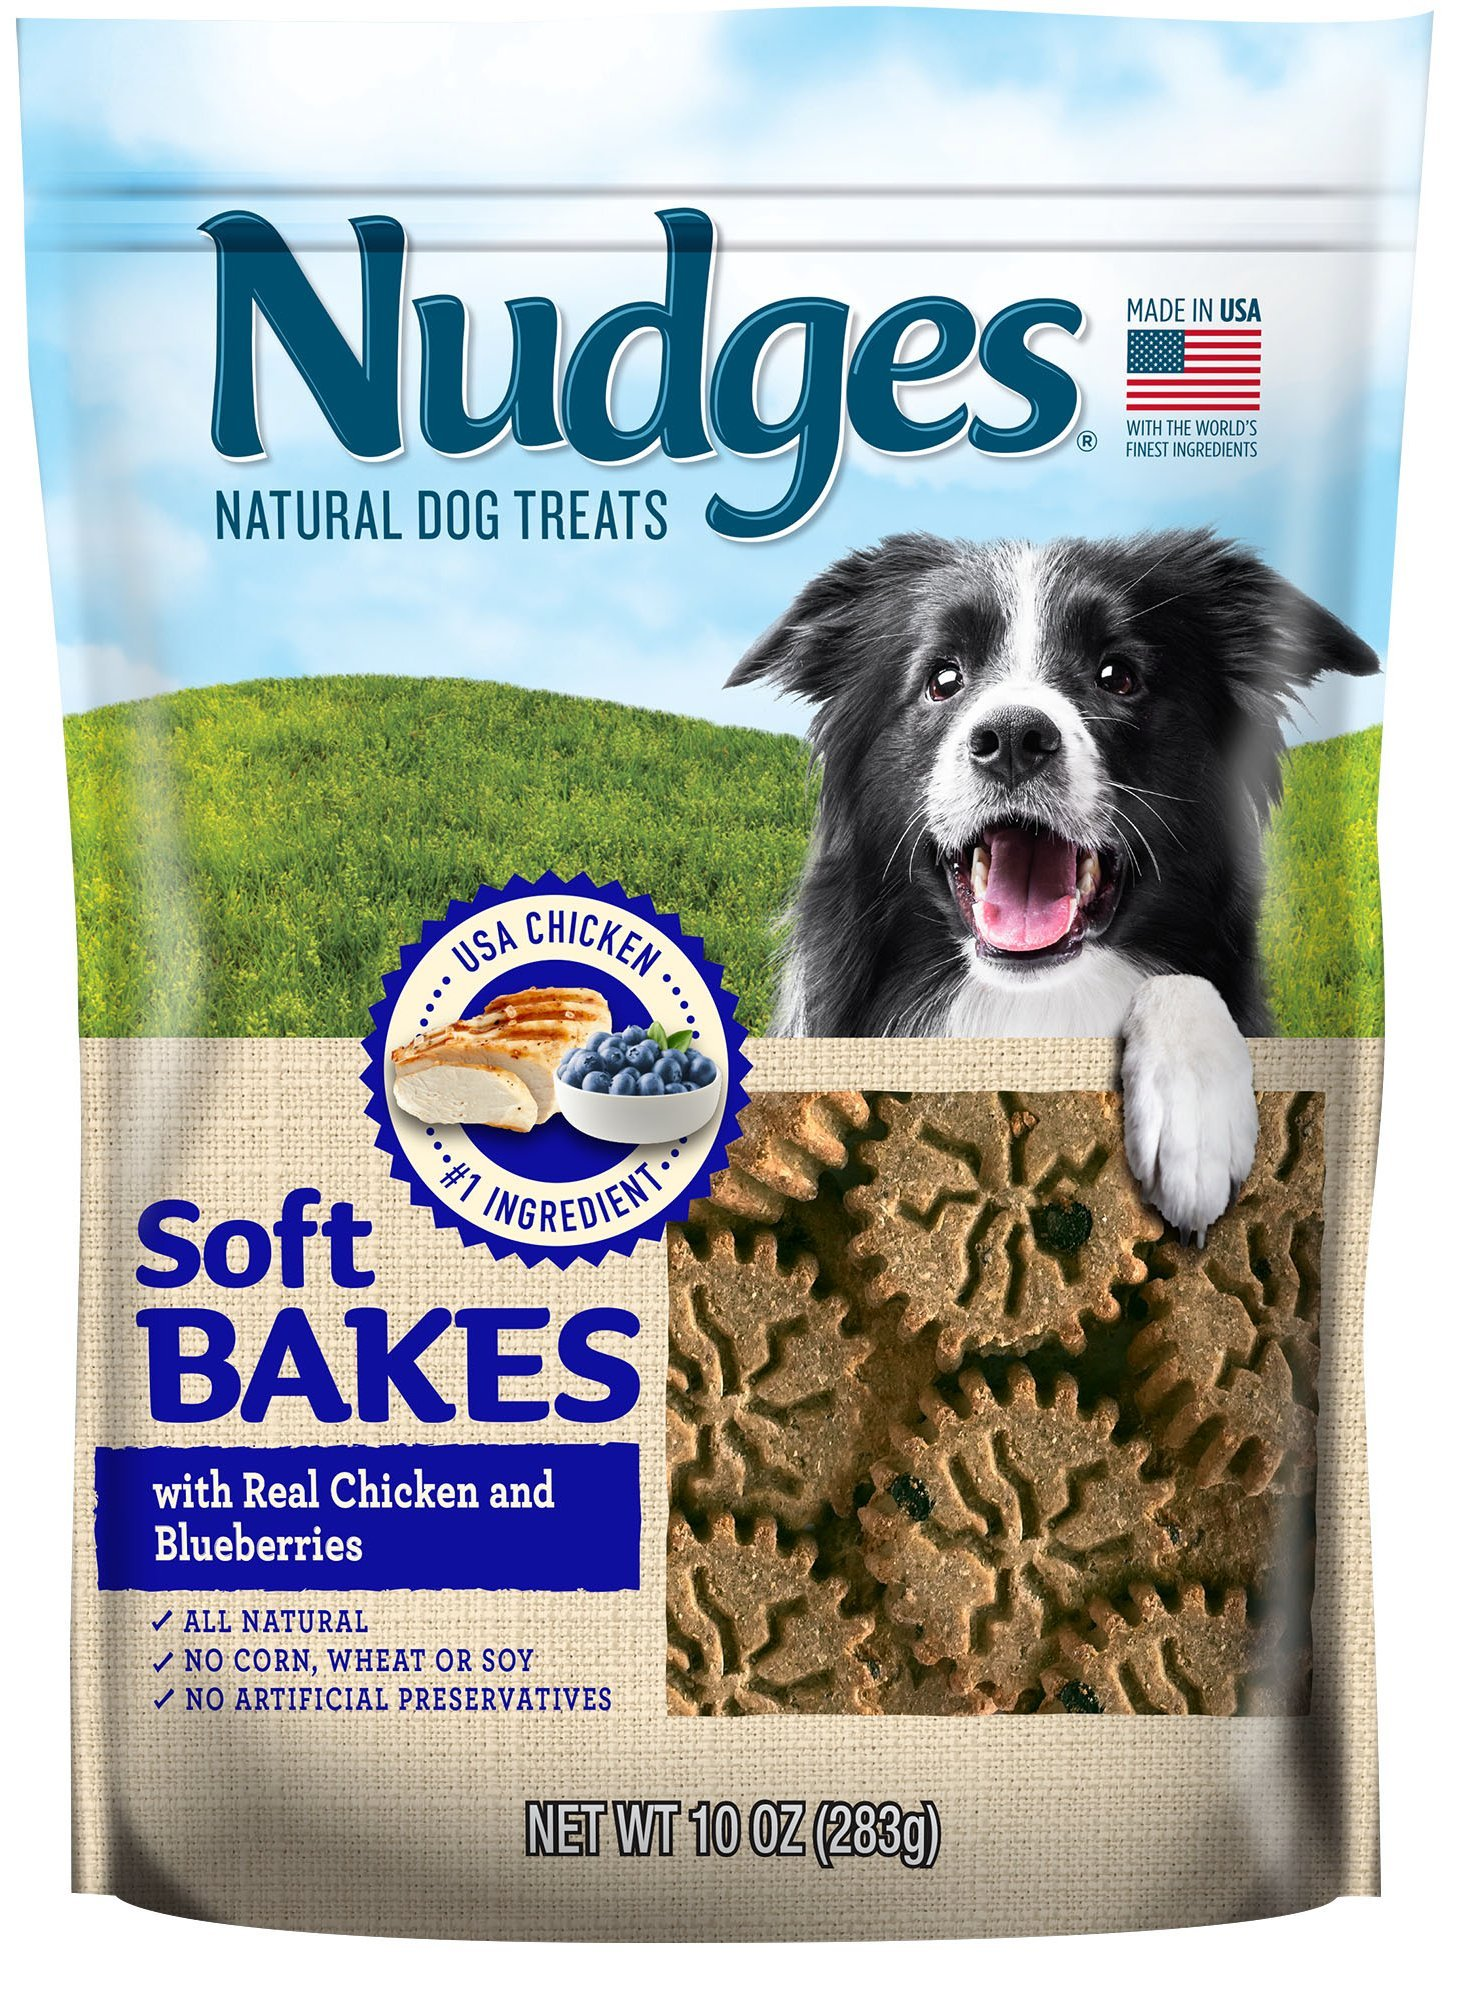 Nudges Chicken, Peanut Butter and Apple Soft Bake Dog Treats, 10 Ounce